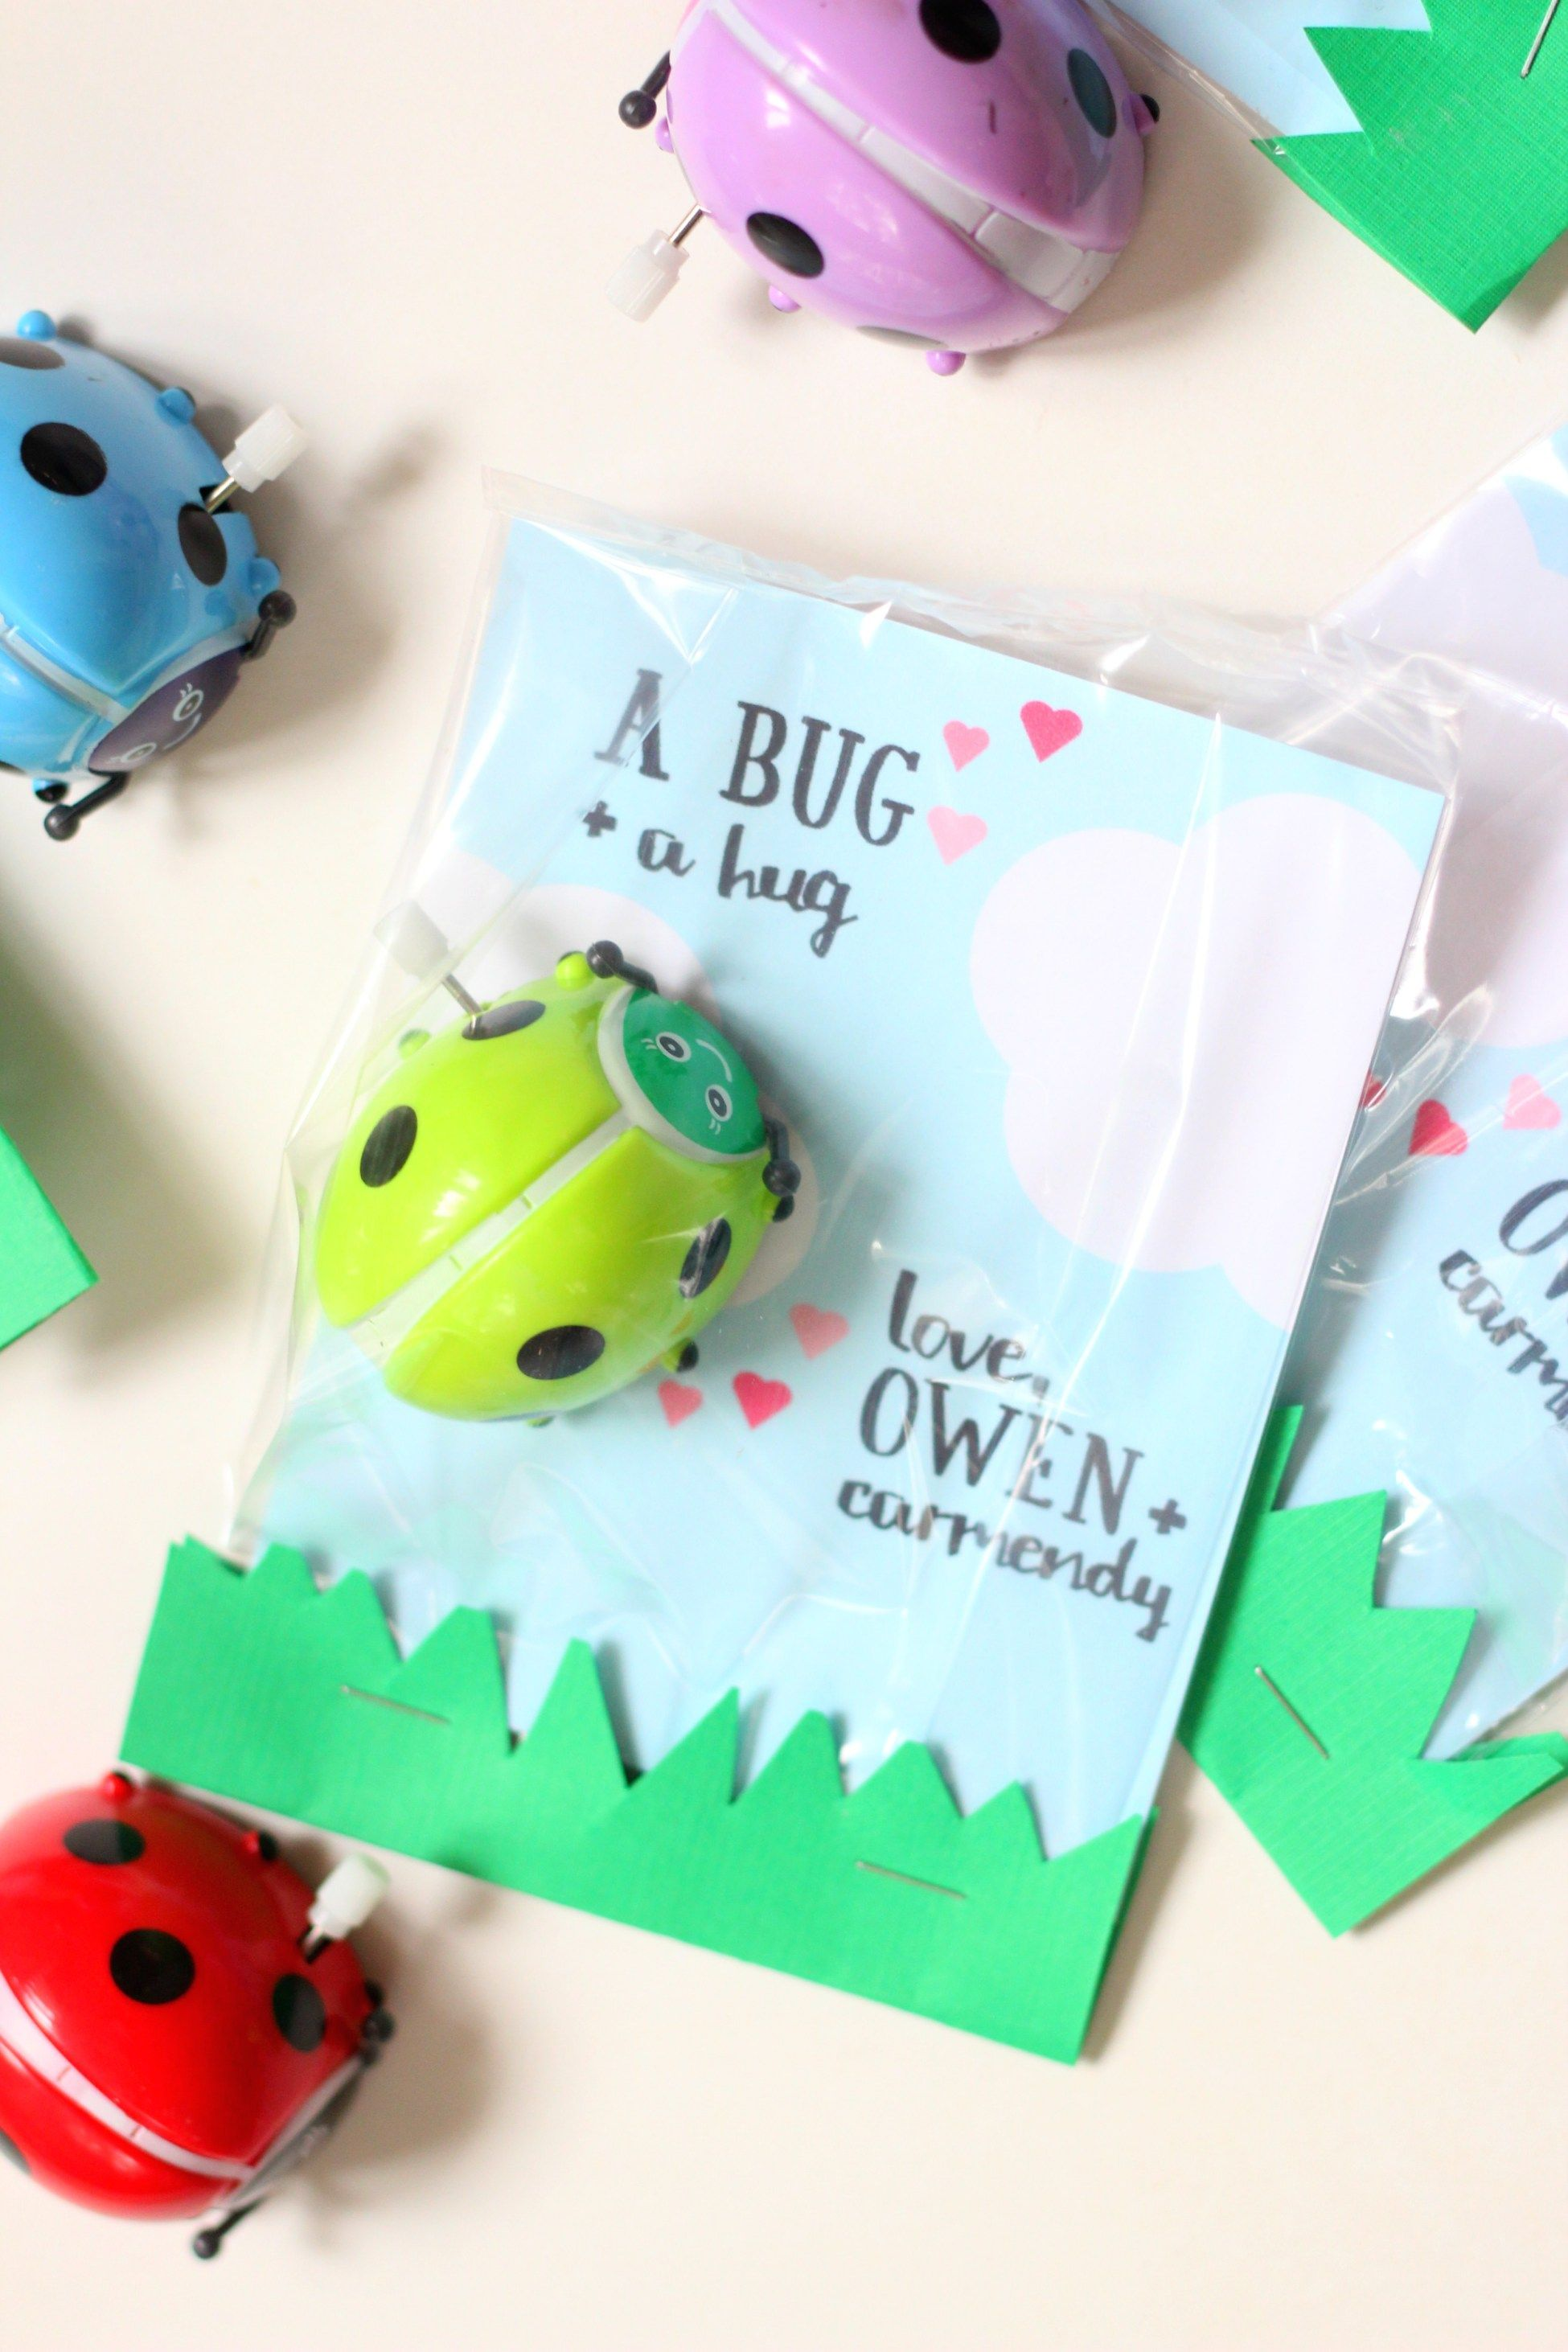 love bug valentines bugs and kisses  ice cream off